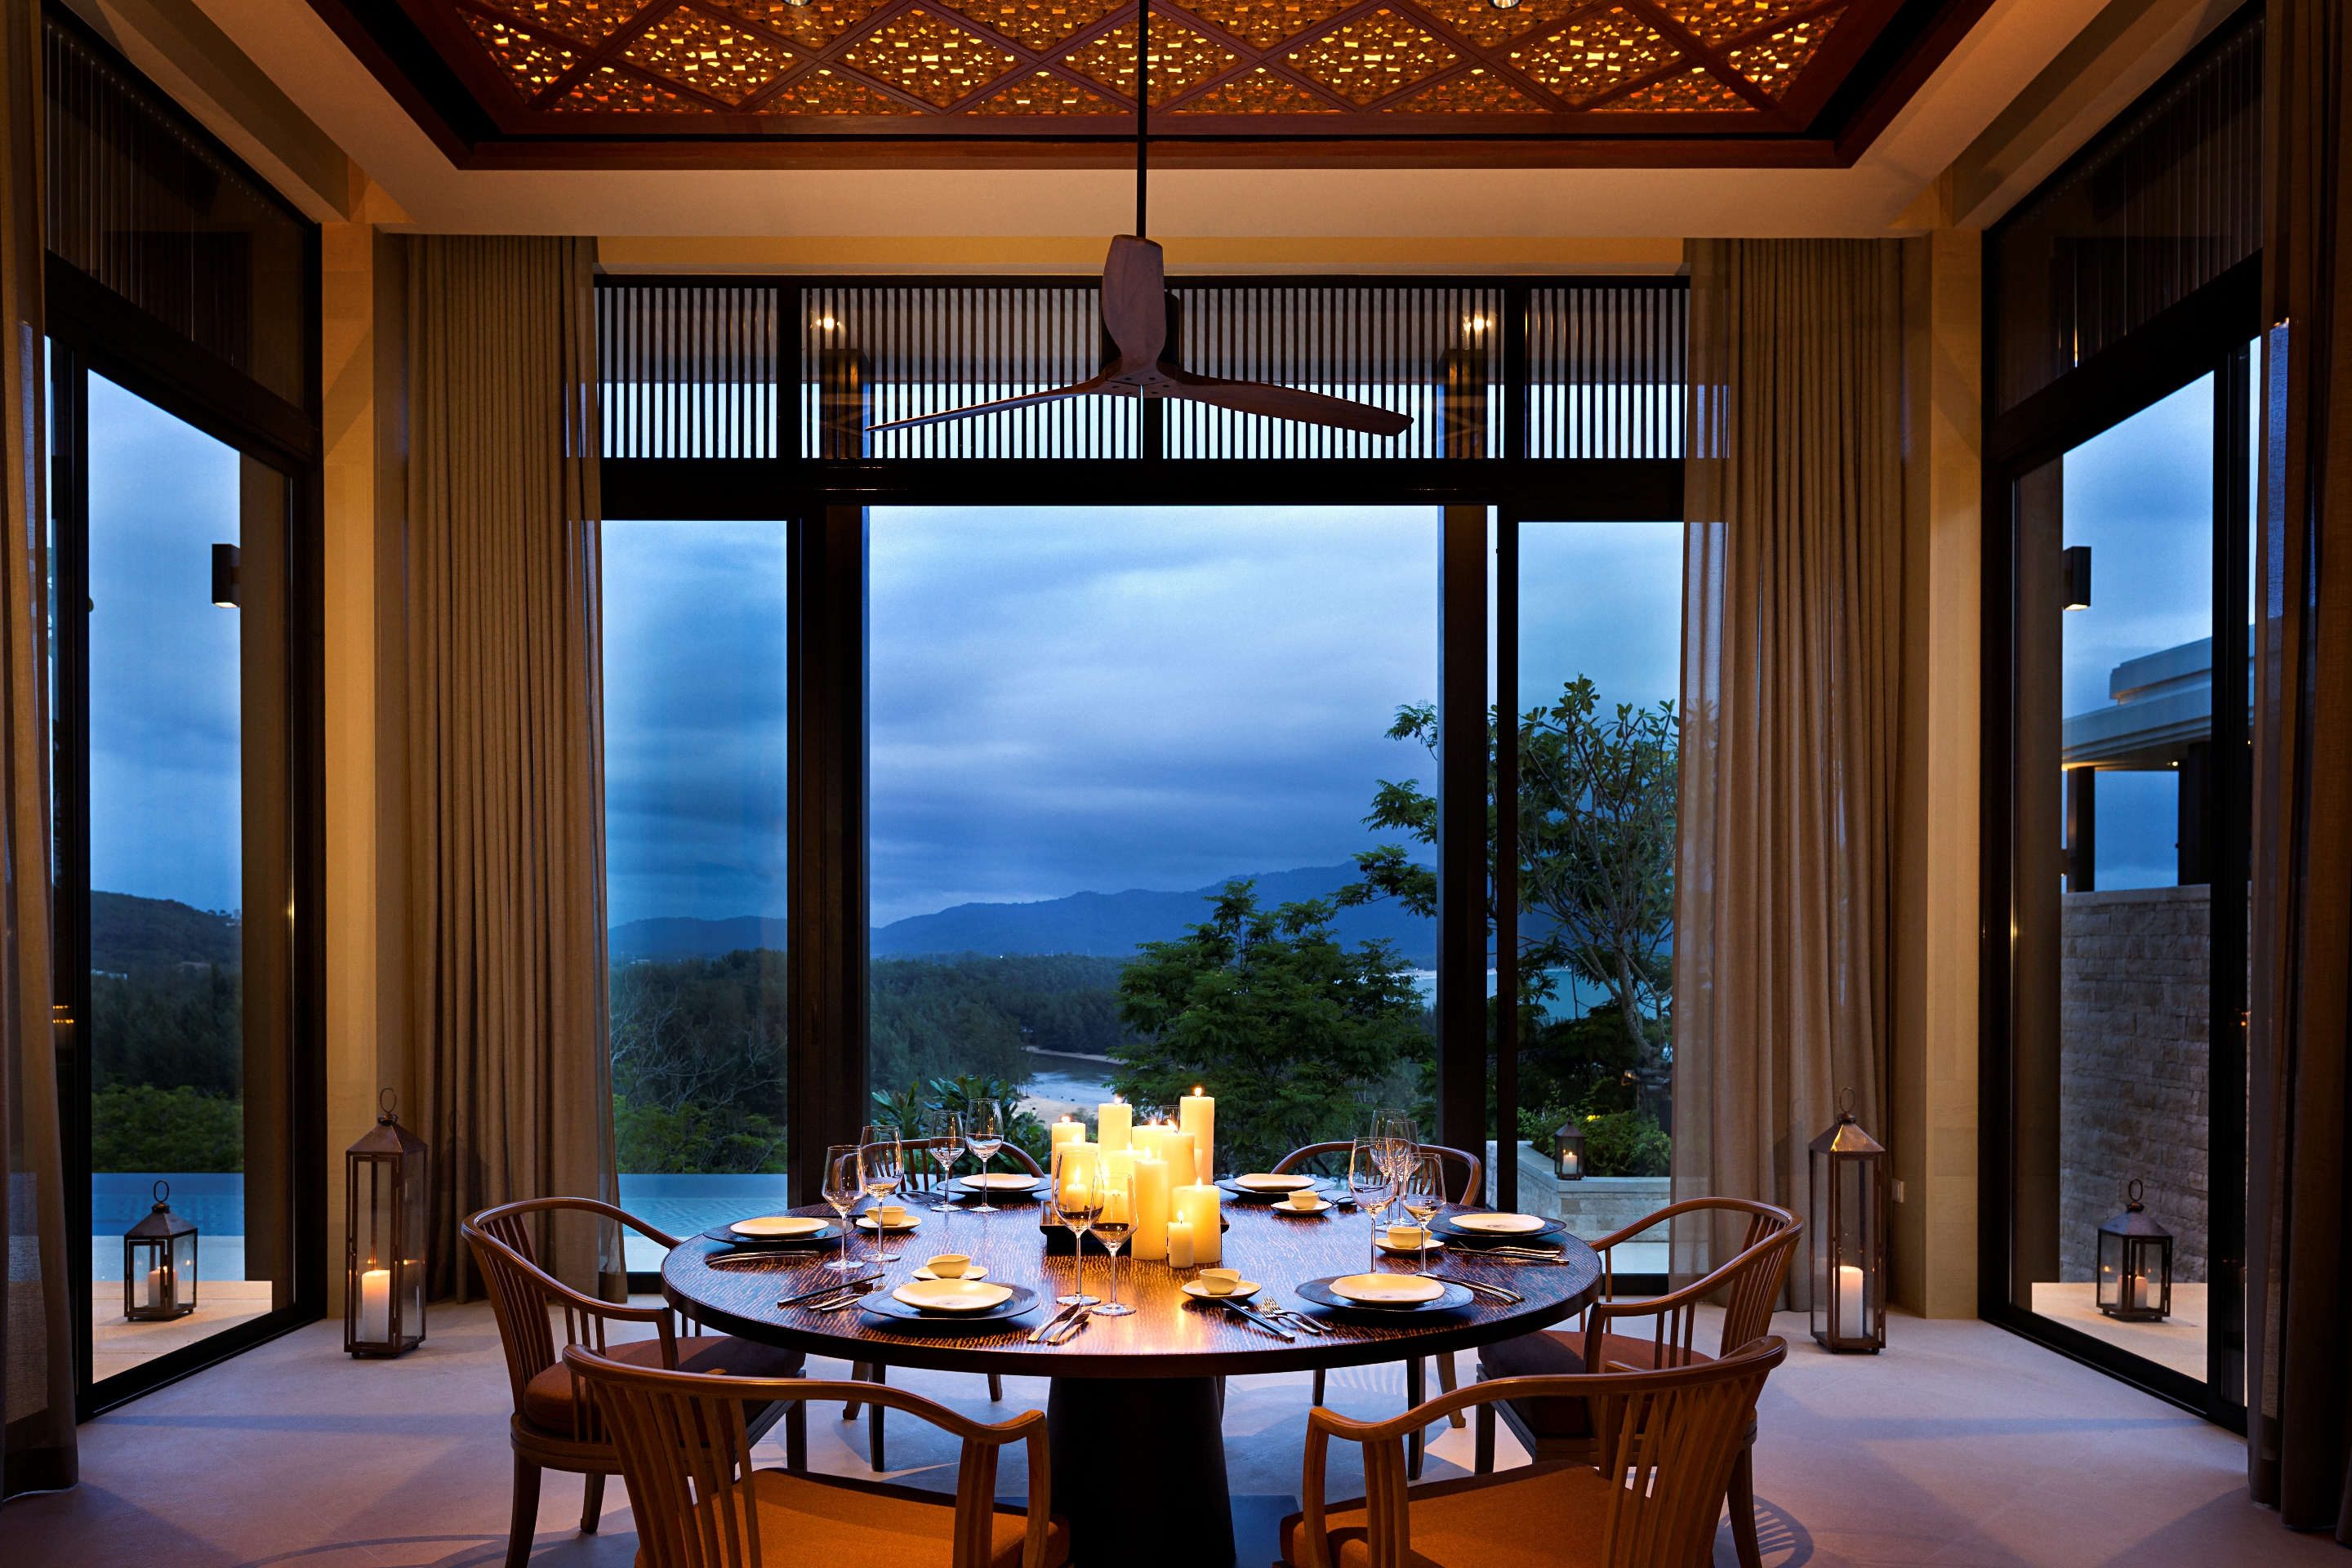 The%20Residences%20by%20Anantara%20Dining%20Room